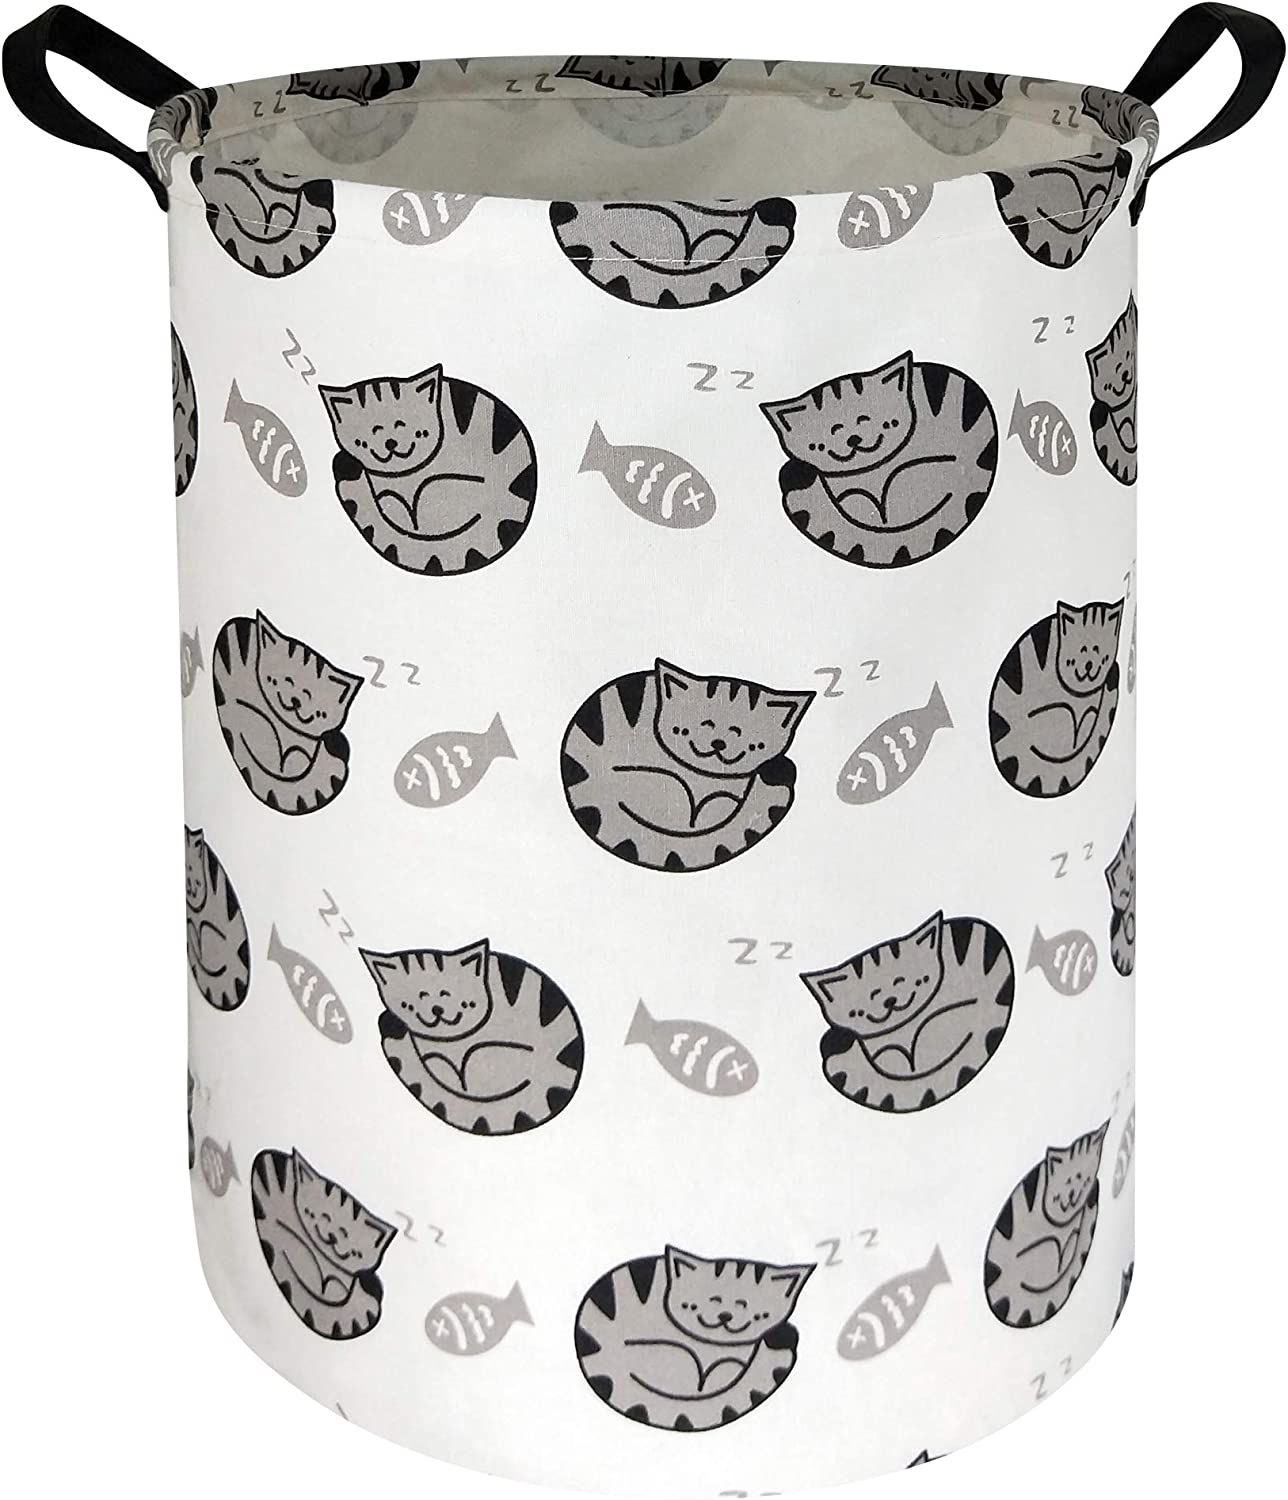 HIYAGON Large Storage Baskets,Waterproof Laundry Baskets,Collapsible Canvas Basket for Storage Bin for Kids Room,Toy Organizer,Home Decor,Baby Hamper(Fish & Cat )